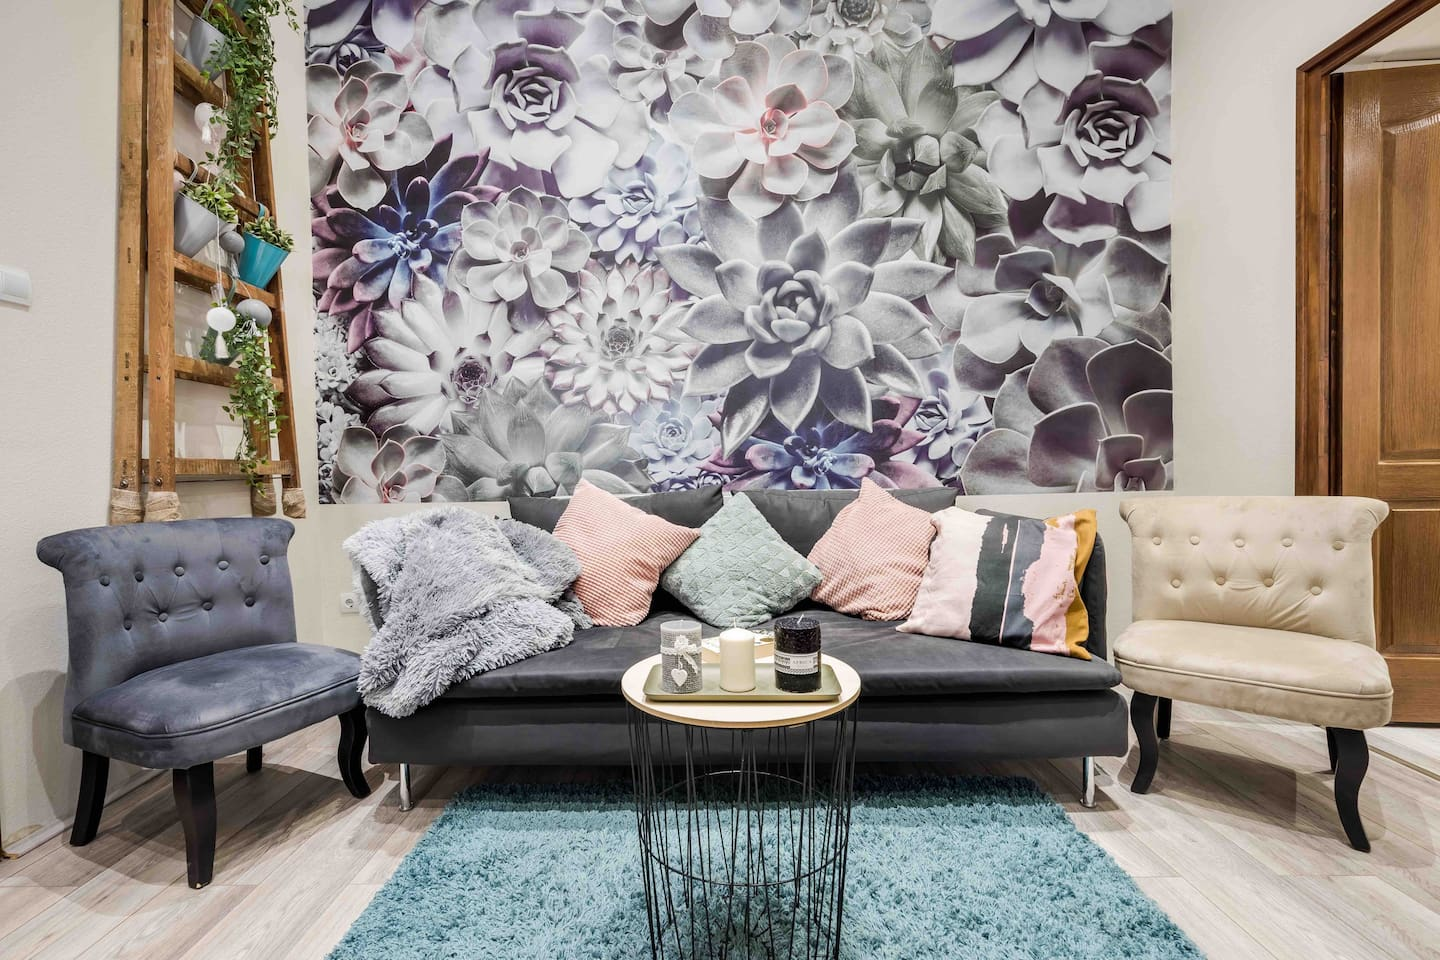 The beautiful houseleek wall makes this living room so unique and chic :)